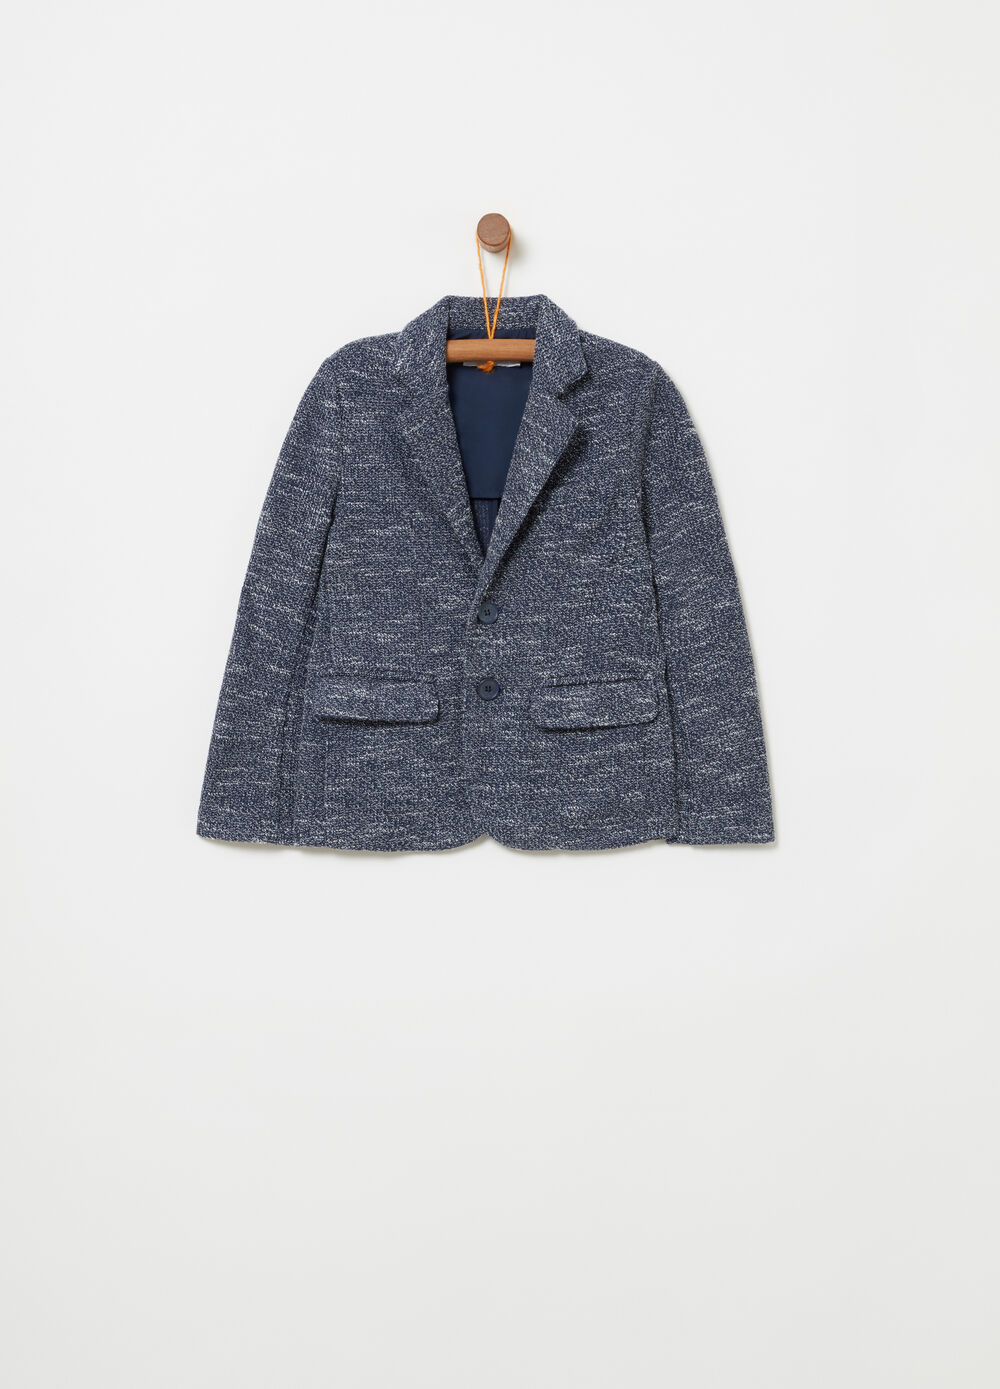 Elegant jacket with knitted lapels